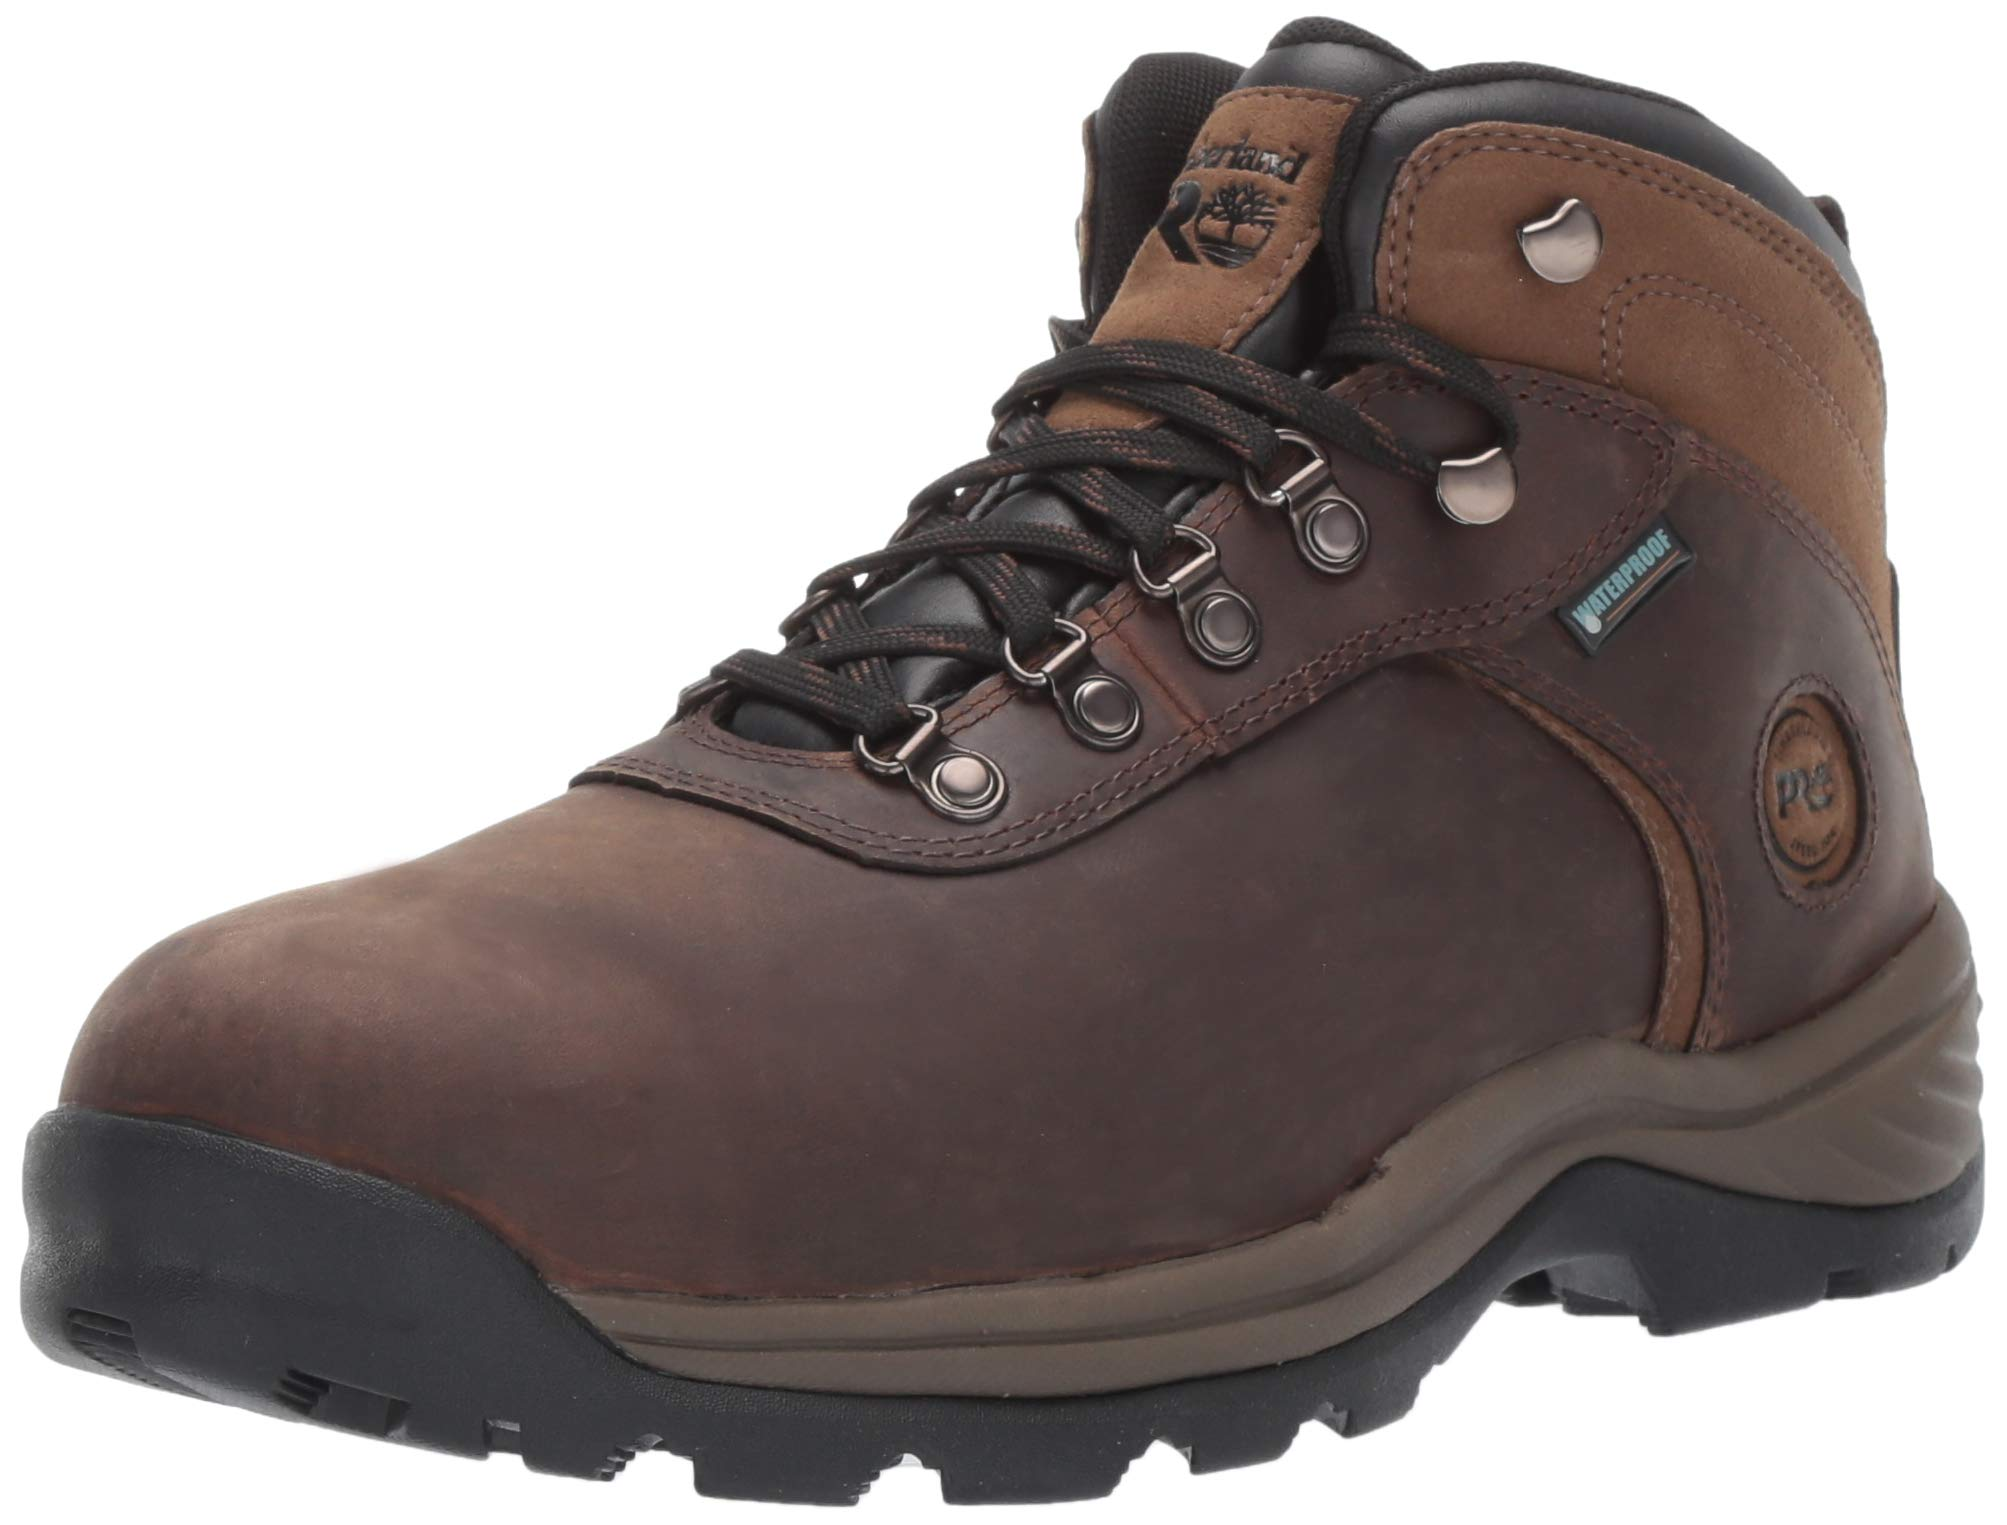 Timberland PRO Men's Flume Mid Steel Toe Waterproof Industrial Boot, Brown, 9.5 M US